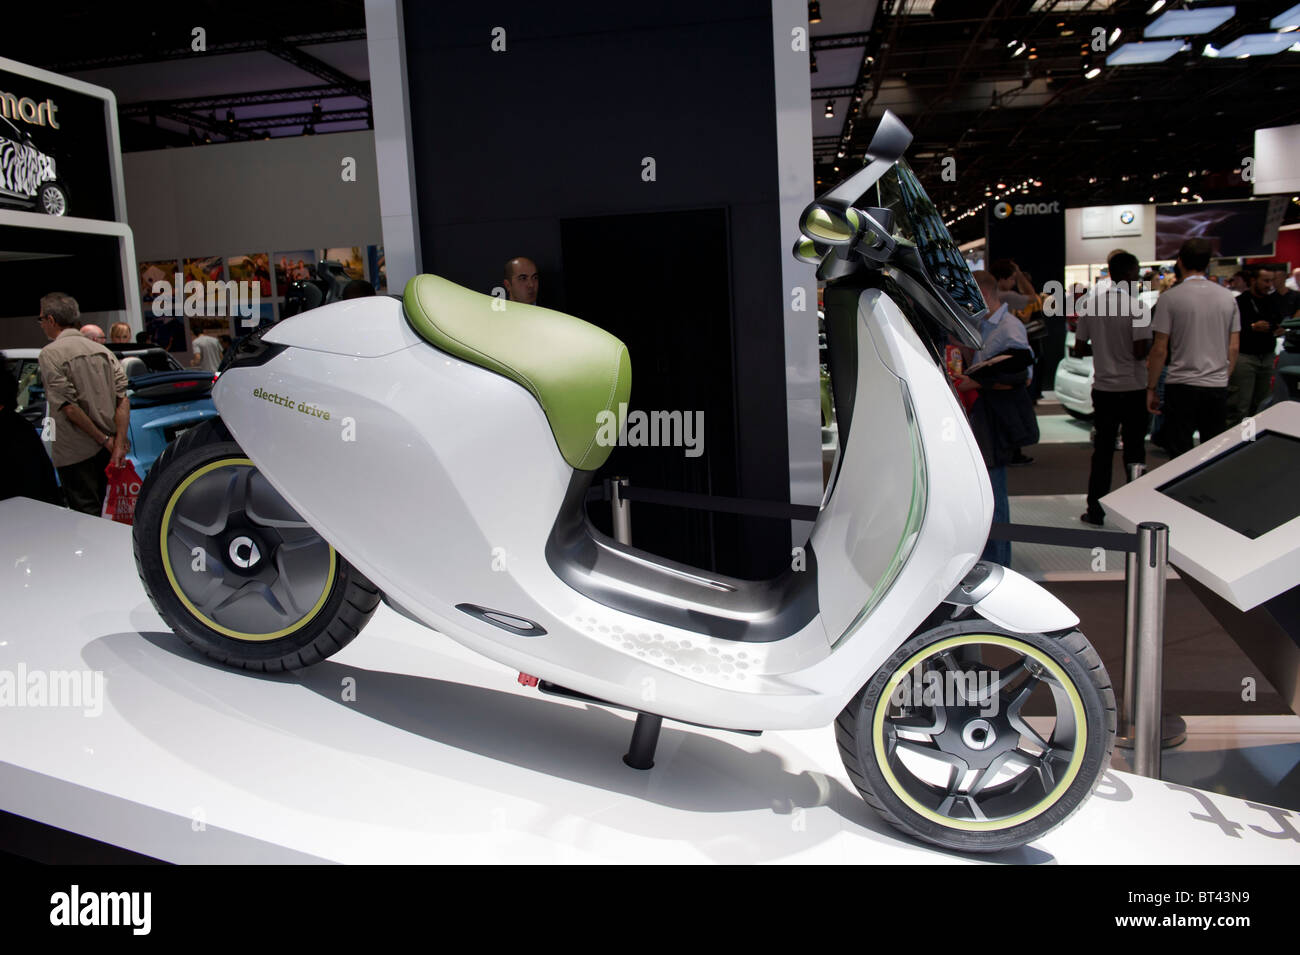 SMART electric scooter on display at Paris Motor Show 2010 - Stock Image